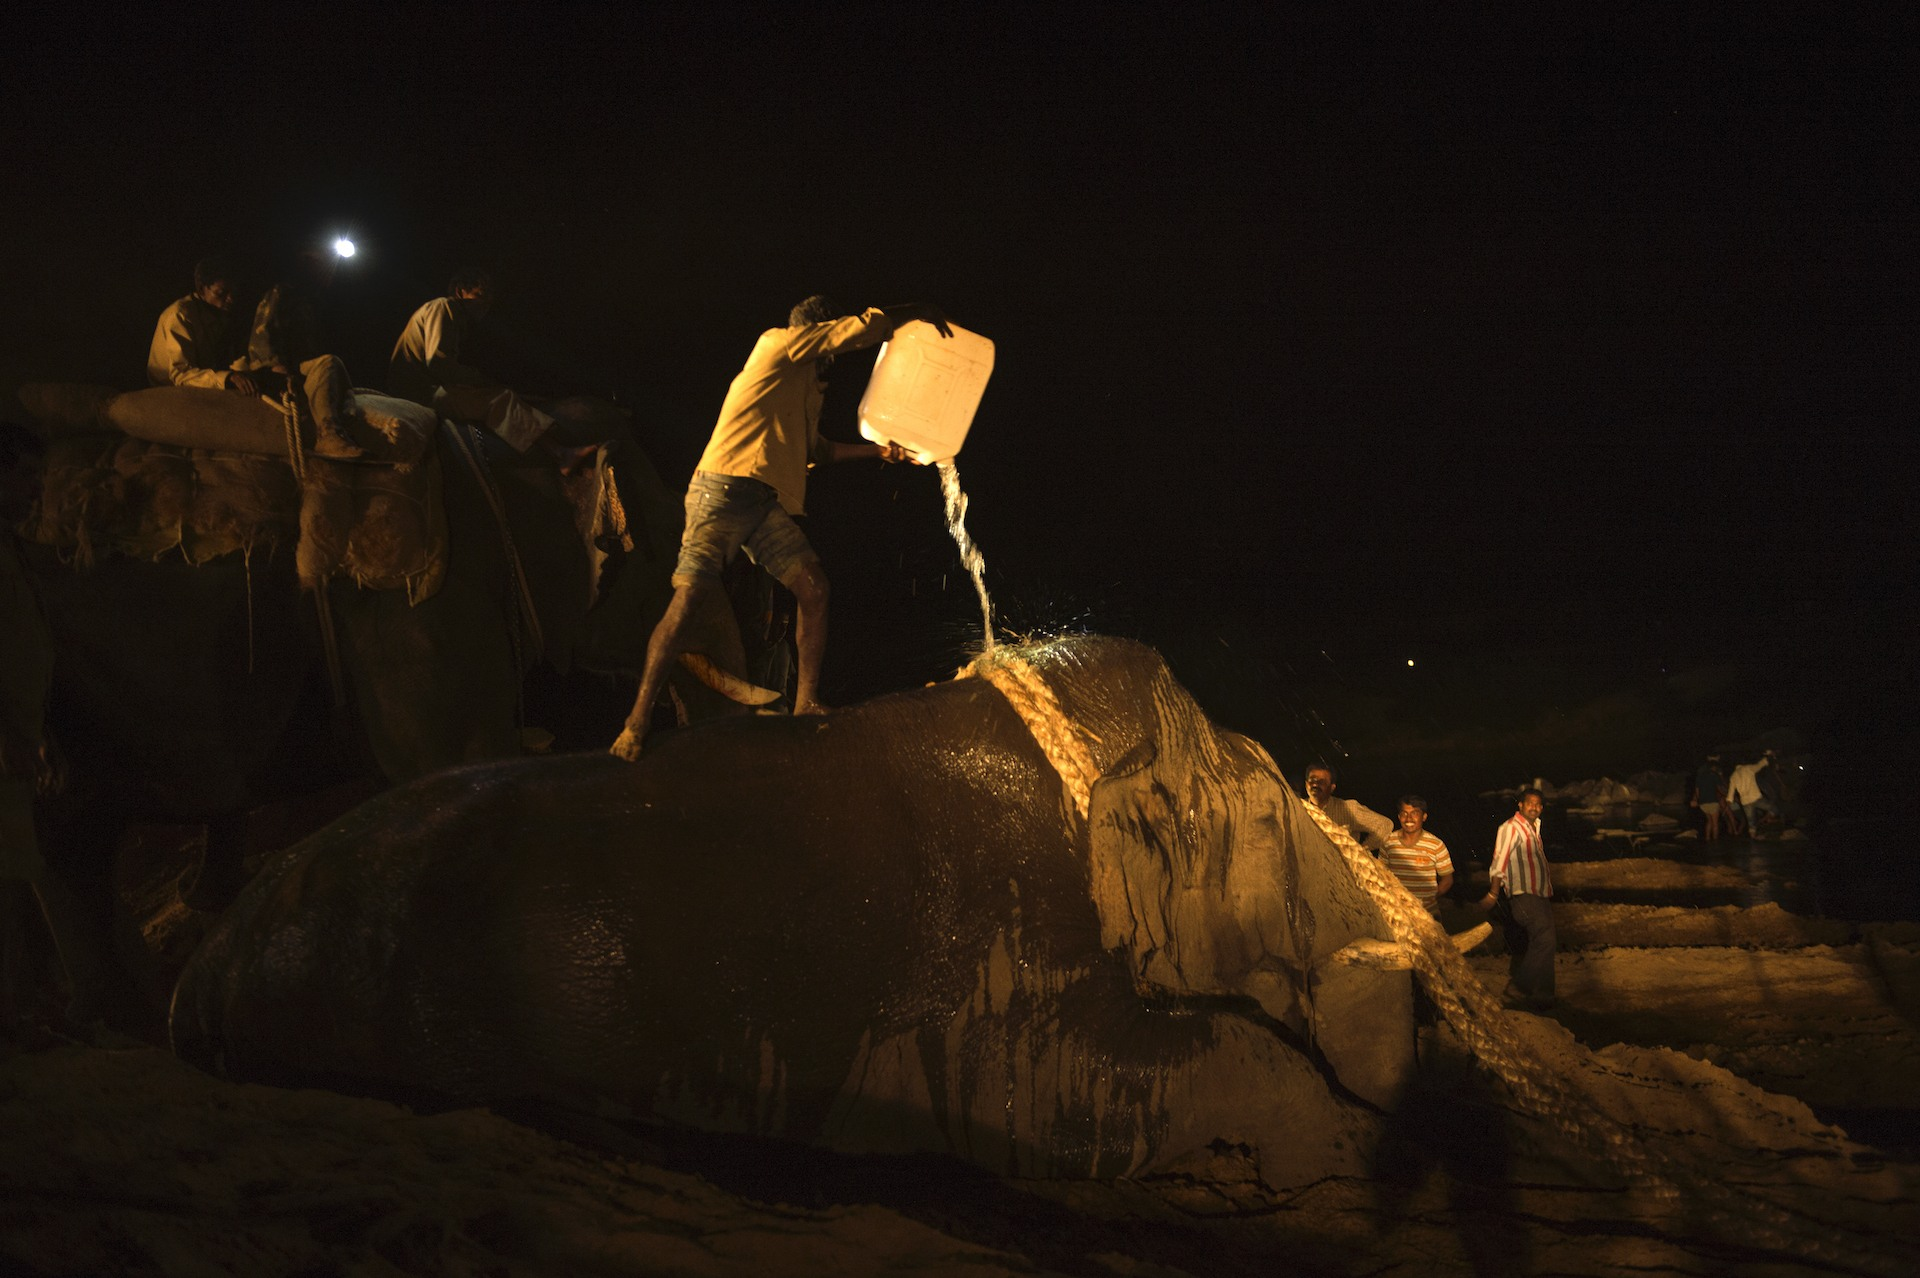 A newly captured, exhausted bull elephant being cooled off and dragged from a capture site to be loaded onto a      truck, near Hassan in Karnataka. Photo: Kalyan Varma